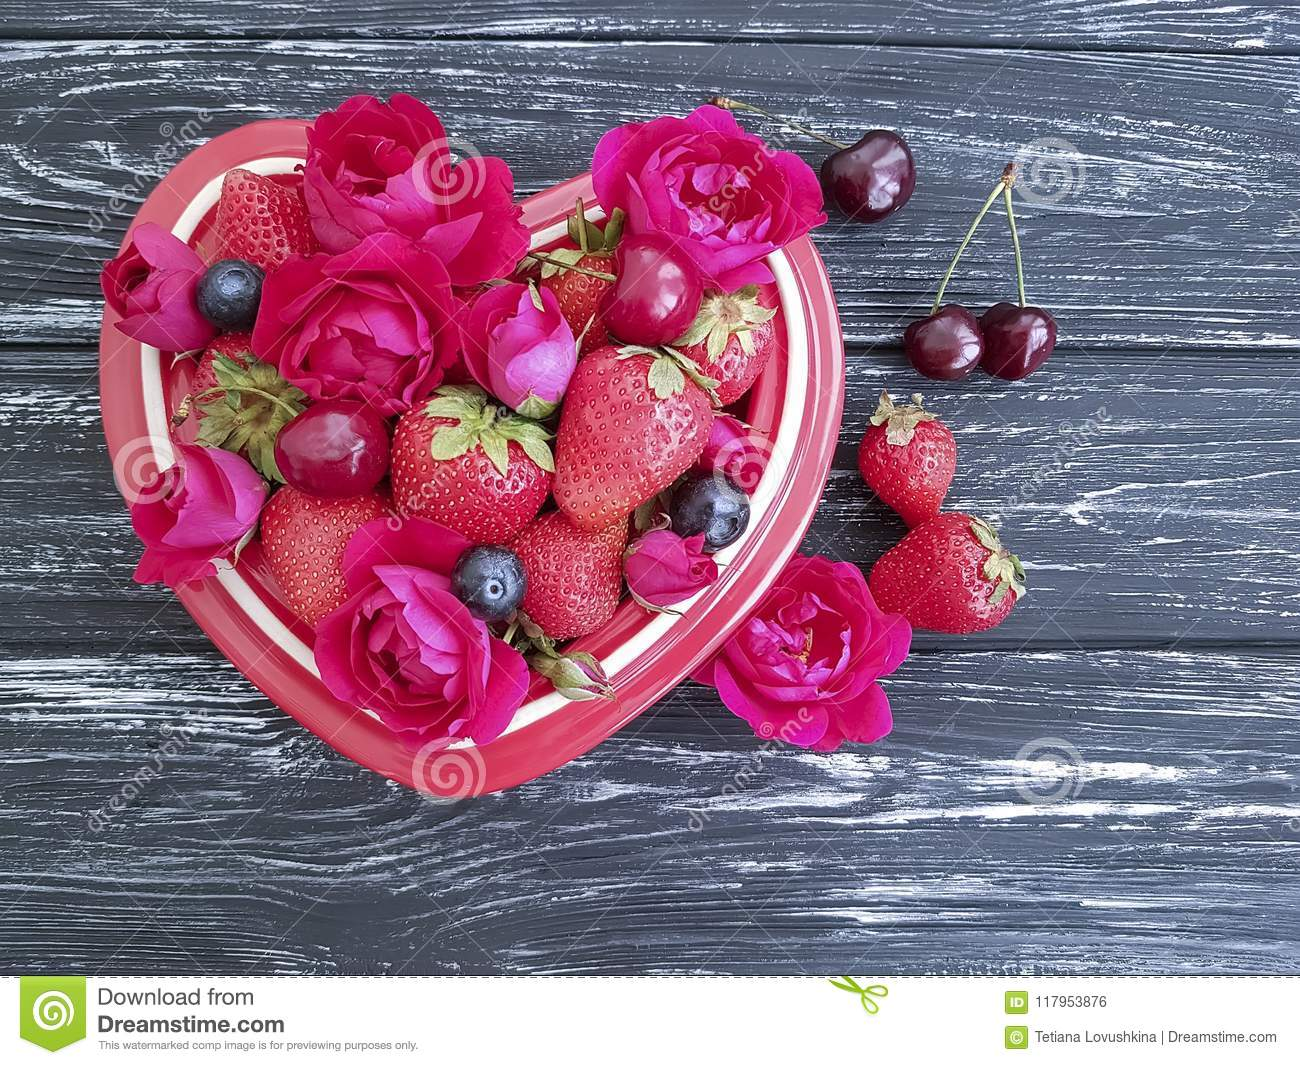 Strawberry, cherry, blueberry plate heart, vintage appetizing flower rose on a black wooden background